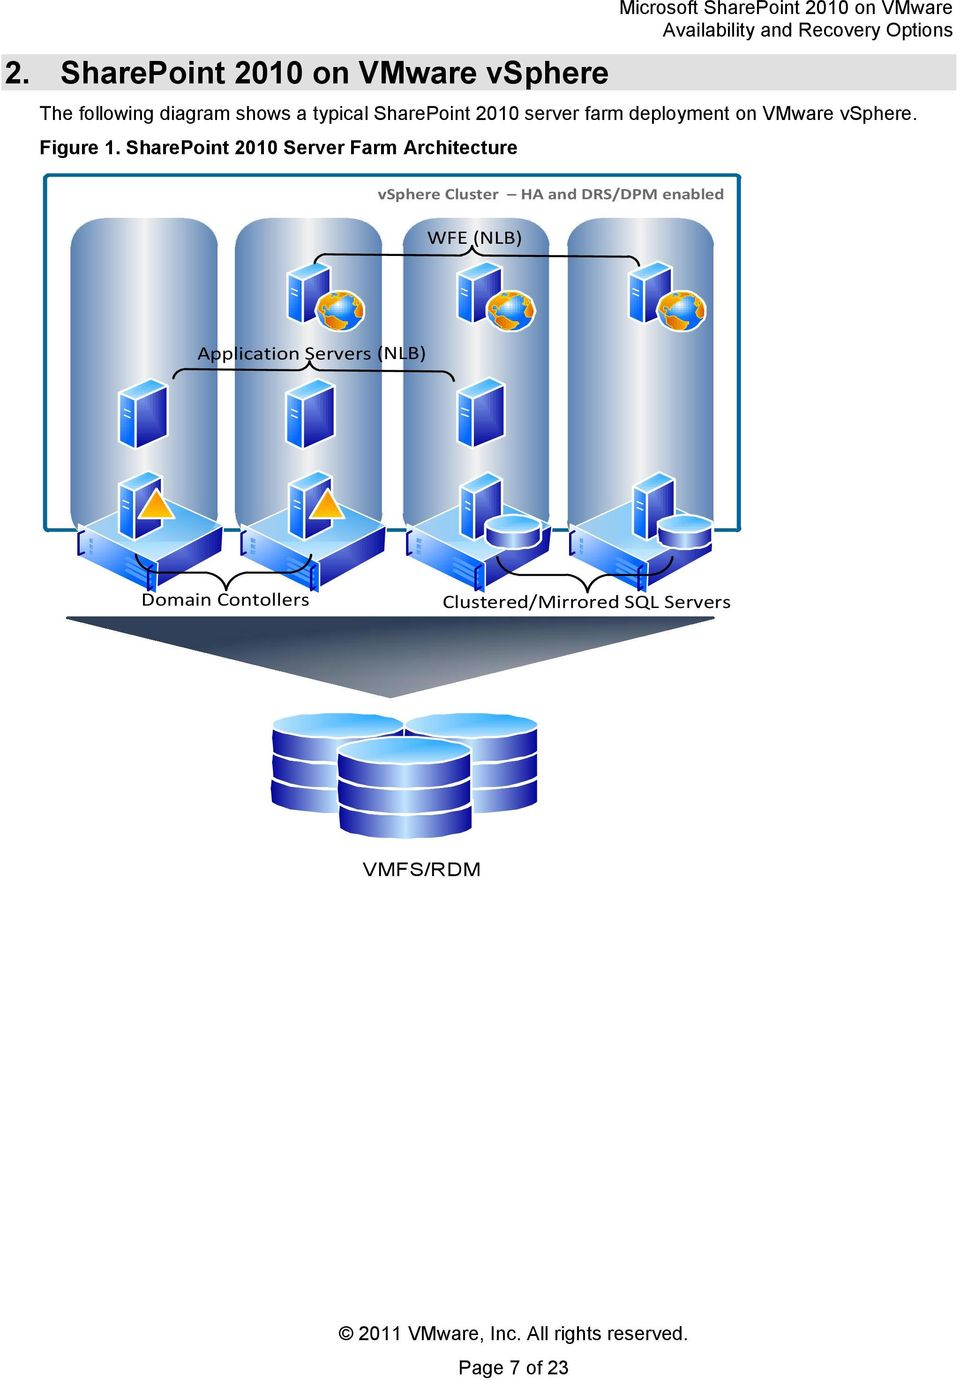 SharePoint 2010 Server Farm Architecture vsphere Cluster HA and DRS/DPM enabled